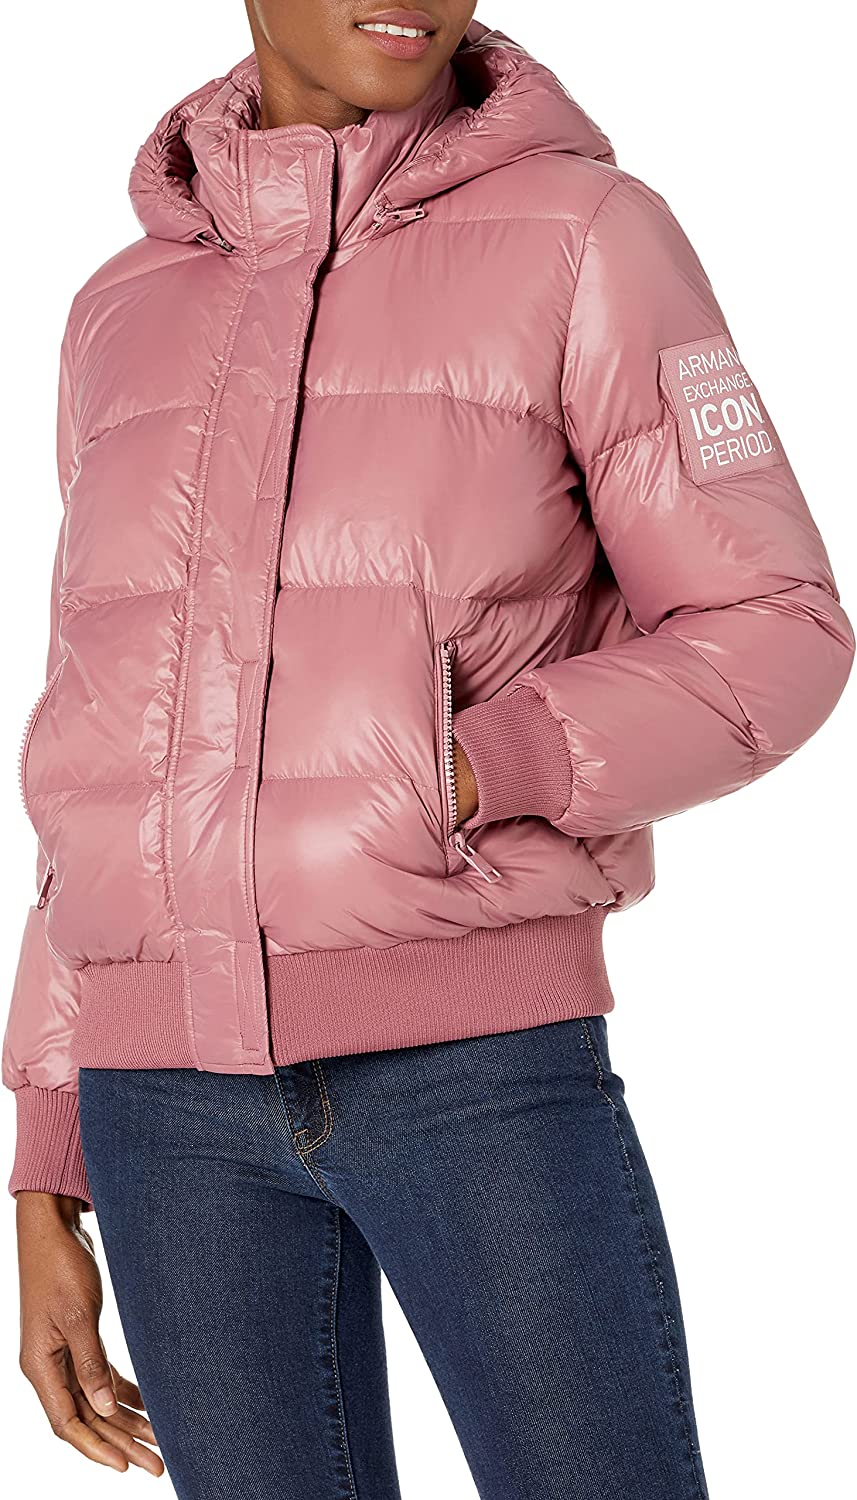 AX Armani Exchange Women's Icon Logo Light-Weighted Puffer Jacket